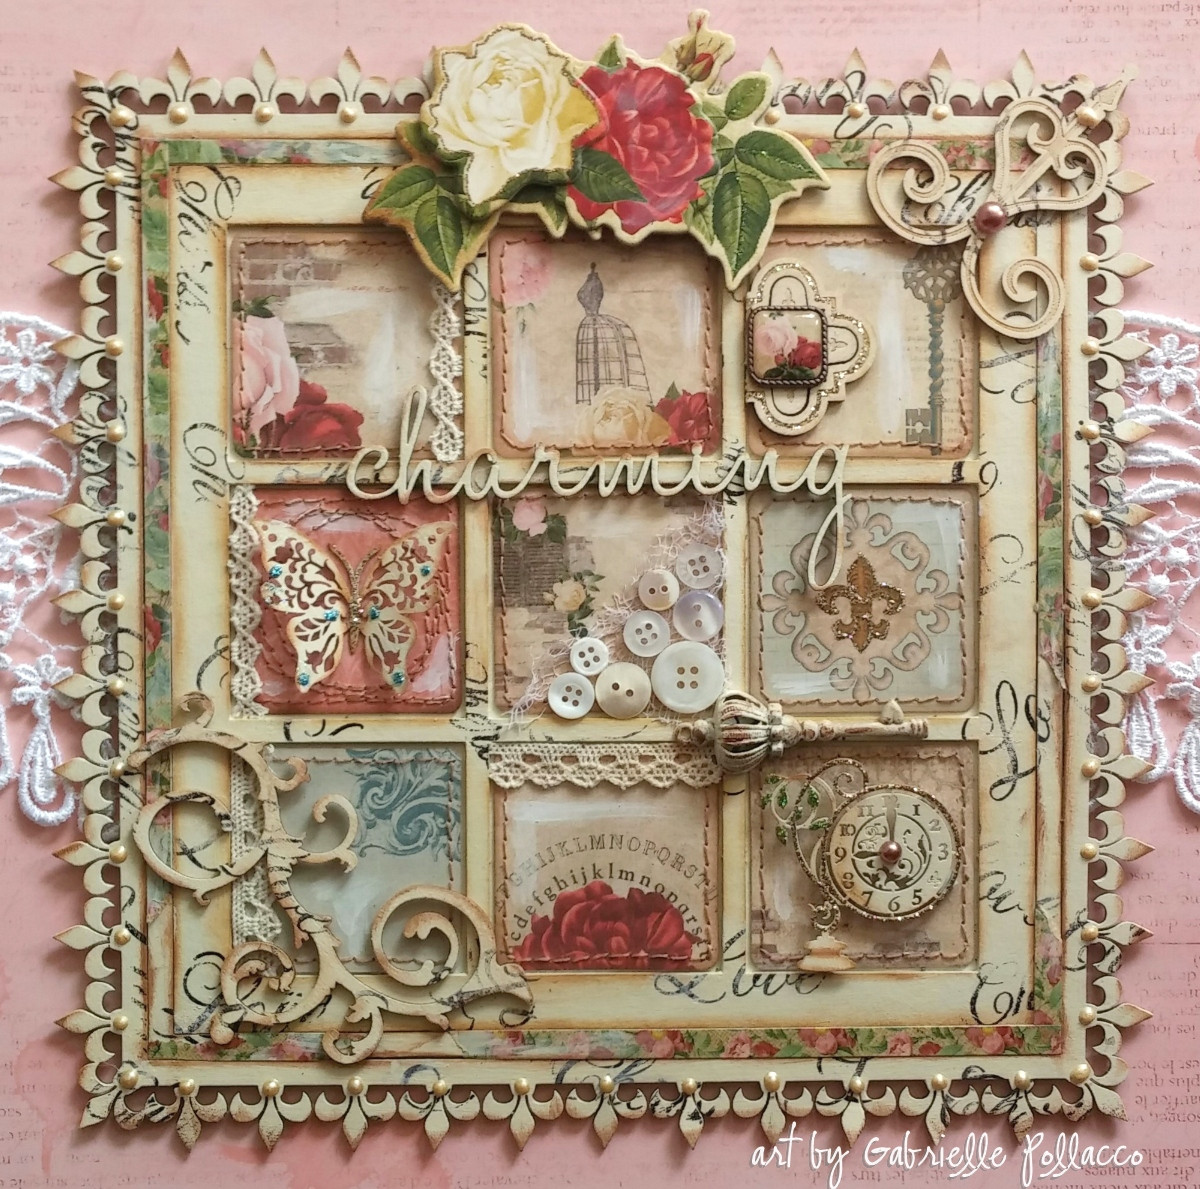 Best ideas about Shabby Chic Art . Save or Pin Such a Pretty Mess Shabby Chic Wall Art Bo Bunny & Dusty Now.